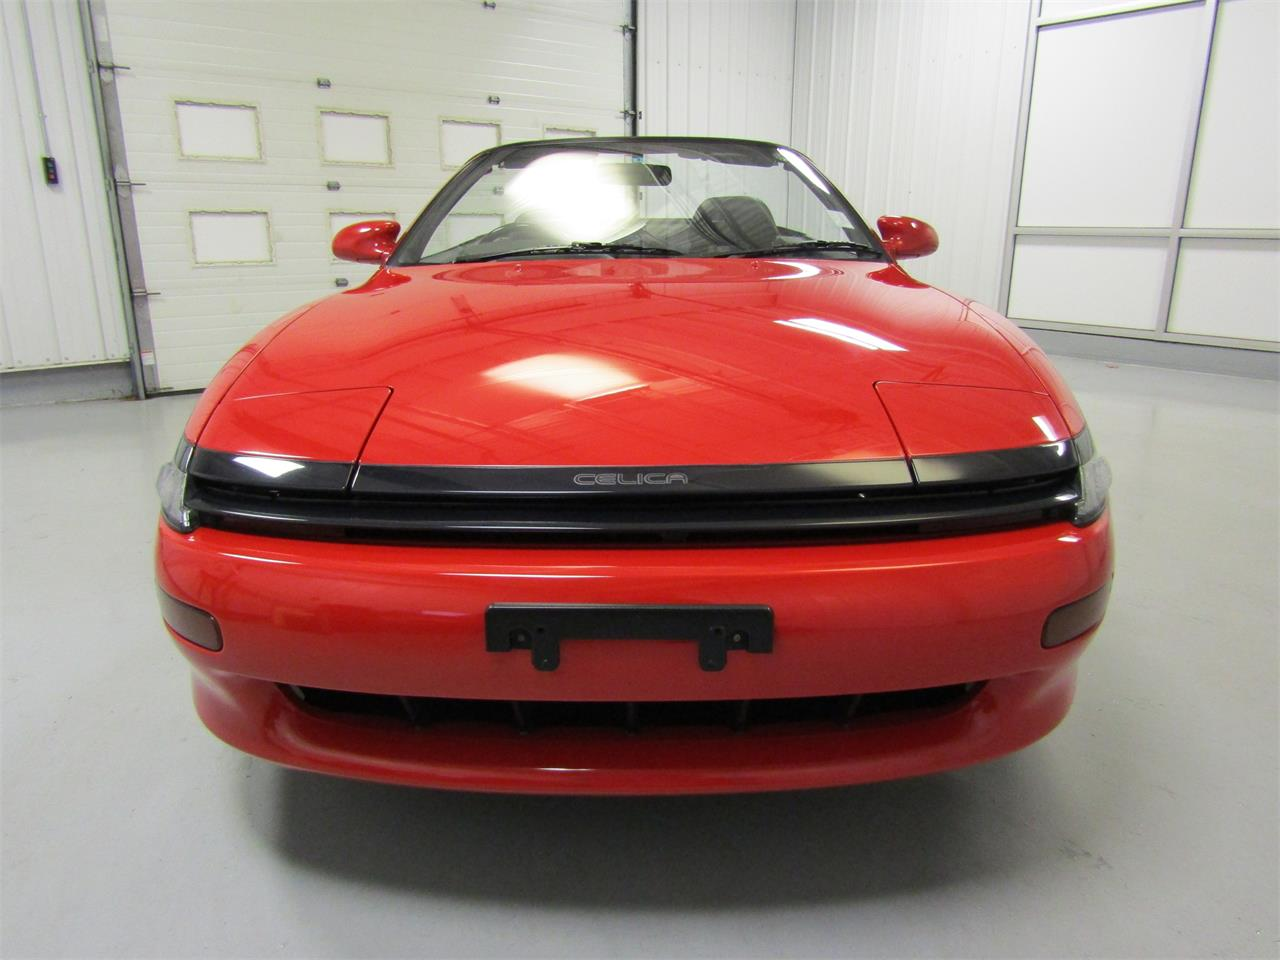 Large Picture of 1991 Toyota Celica Offered by Duncan Imports & Classic Cars - OV71